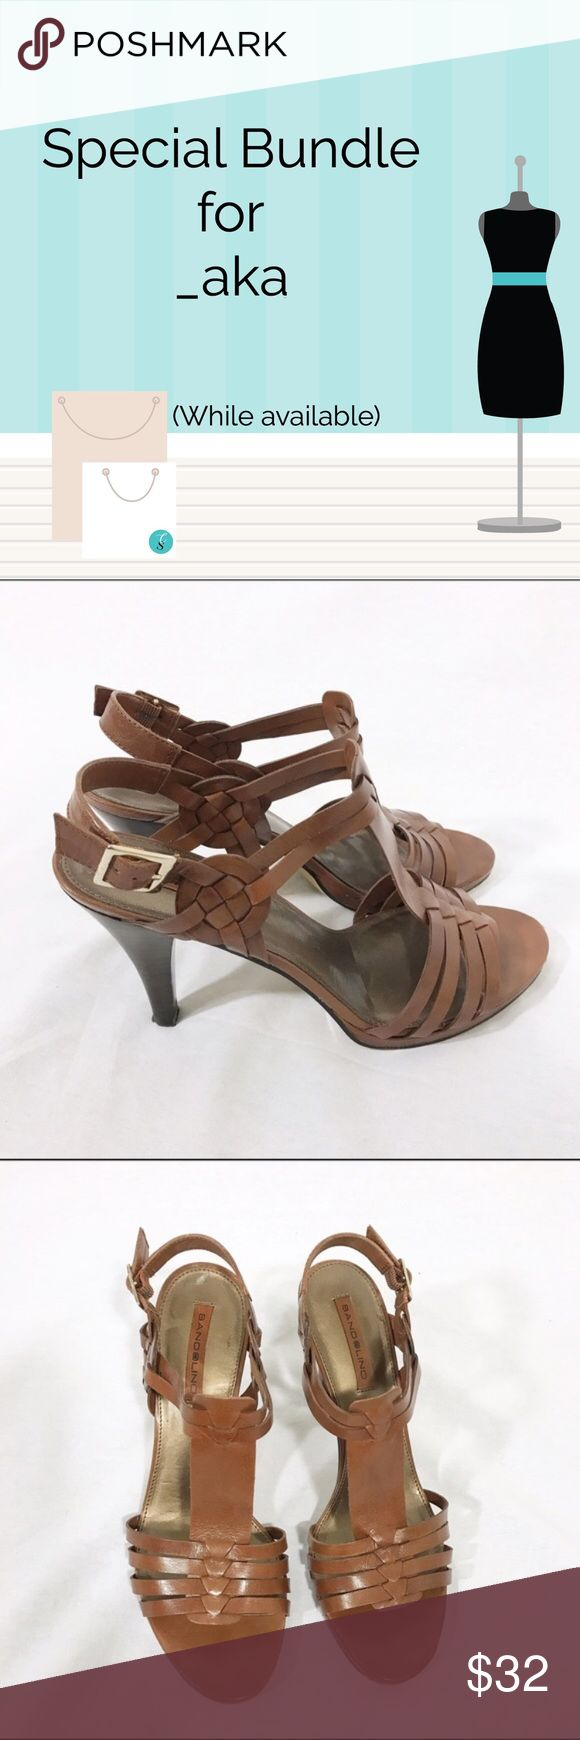 """Bundle: Bandolino Brown Sandals; Old Navy Blouse 1. Bandolino Brown Leather Strappy High Heel Sandals Beautiful pair of Bandolino brown leather strappy high heels. Heel height 4"""".   Size 9M     Excellent pre-owned condition. Little sign of wear around front.   2. Old Navy Nautical Blue White Striped Sheer Blouse This blouse will have ready to embark on a spring adventure. Blue and white stripes. Button down chest area. Material: 100% Polyester.  Size L  Measurements Armpit to armpit 20.5""""…"""